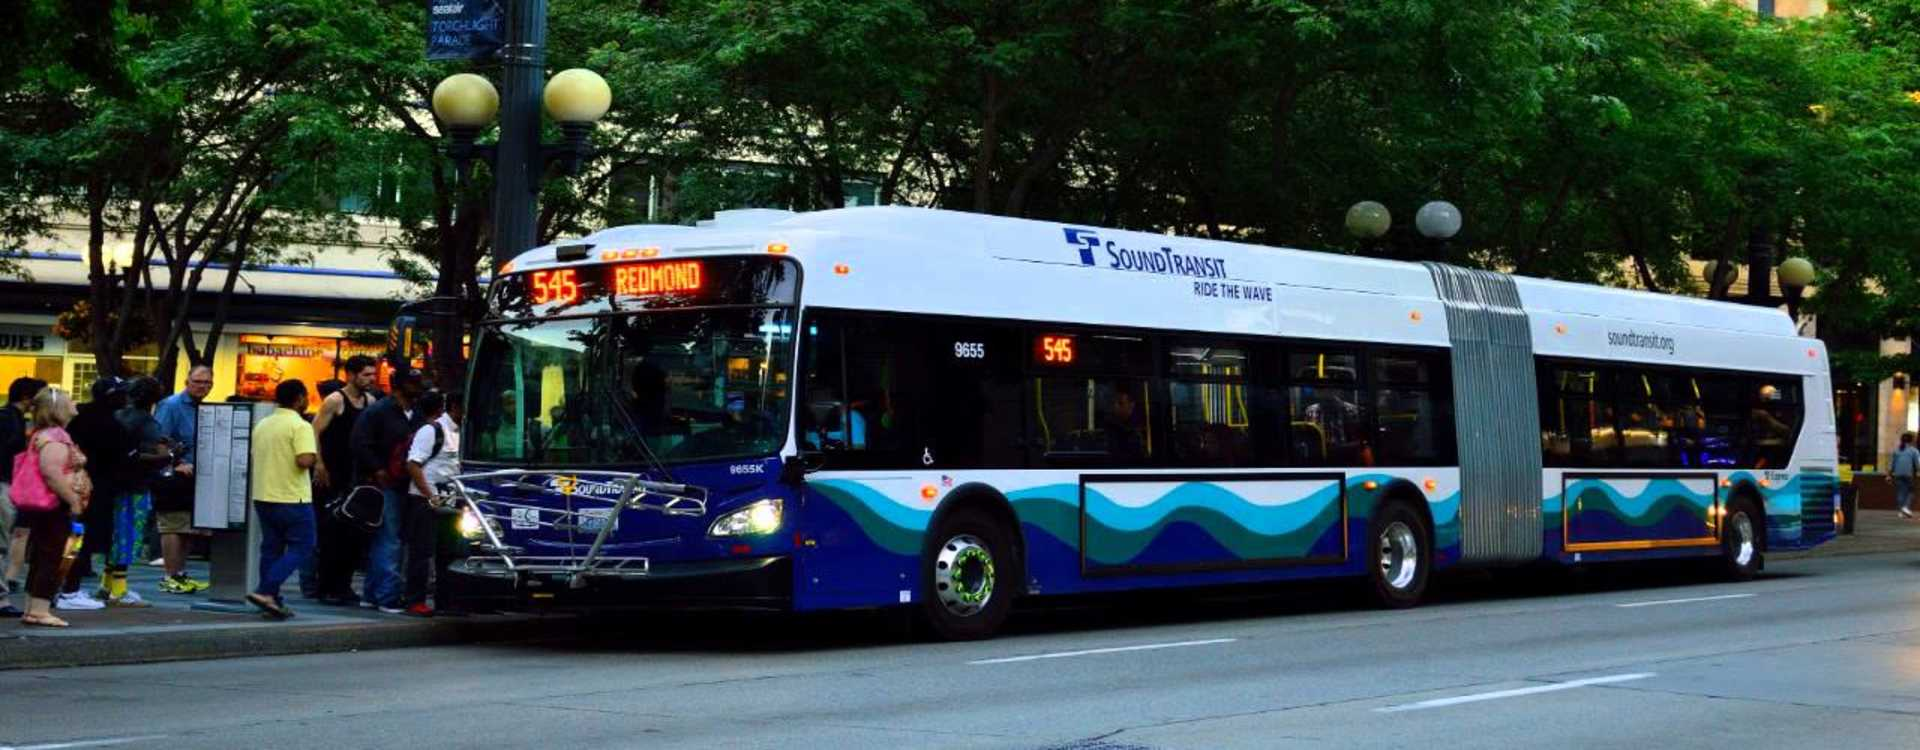 Sound Transit Express Bus